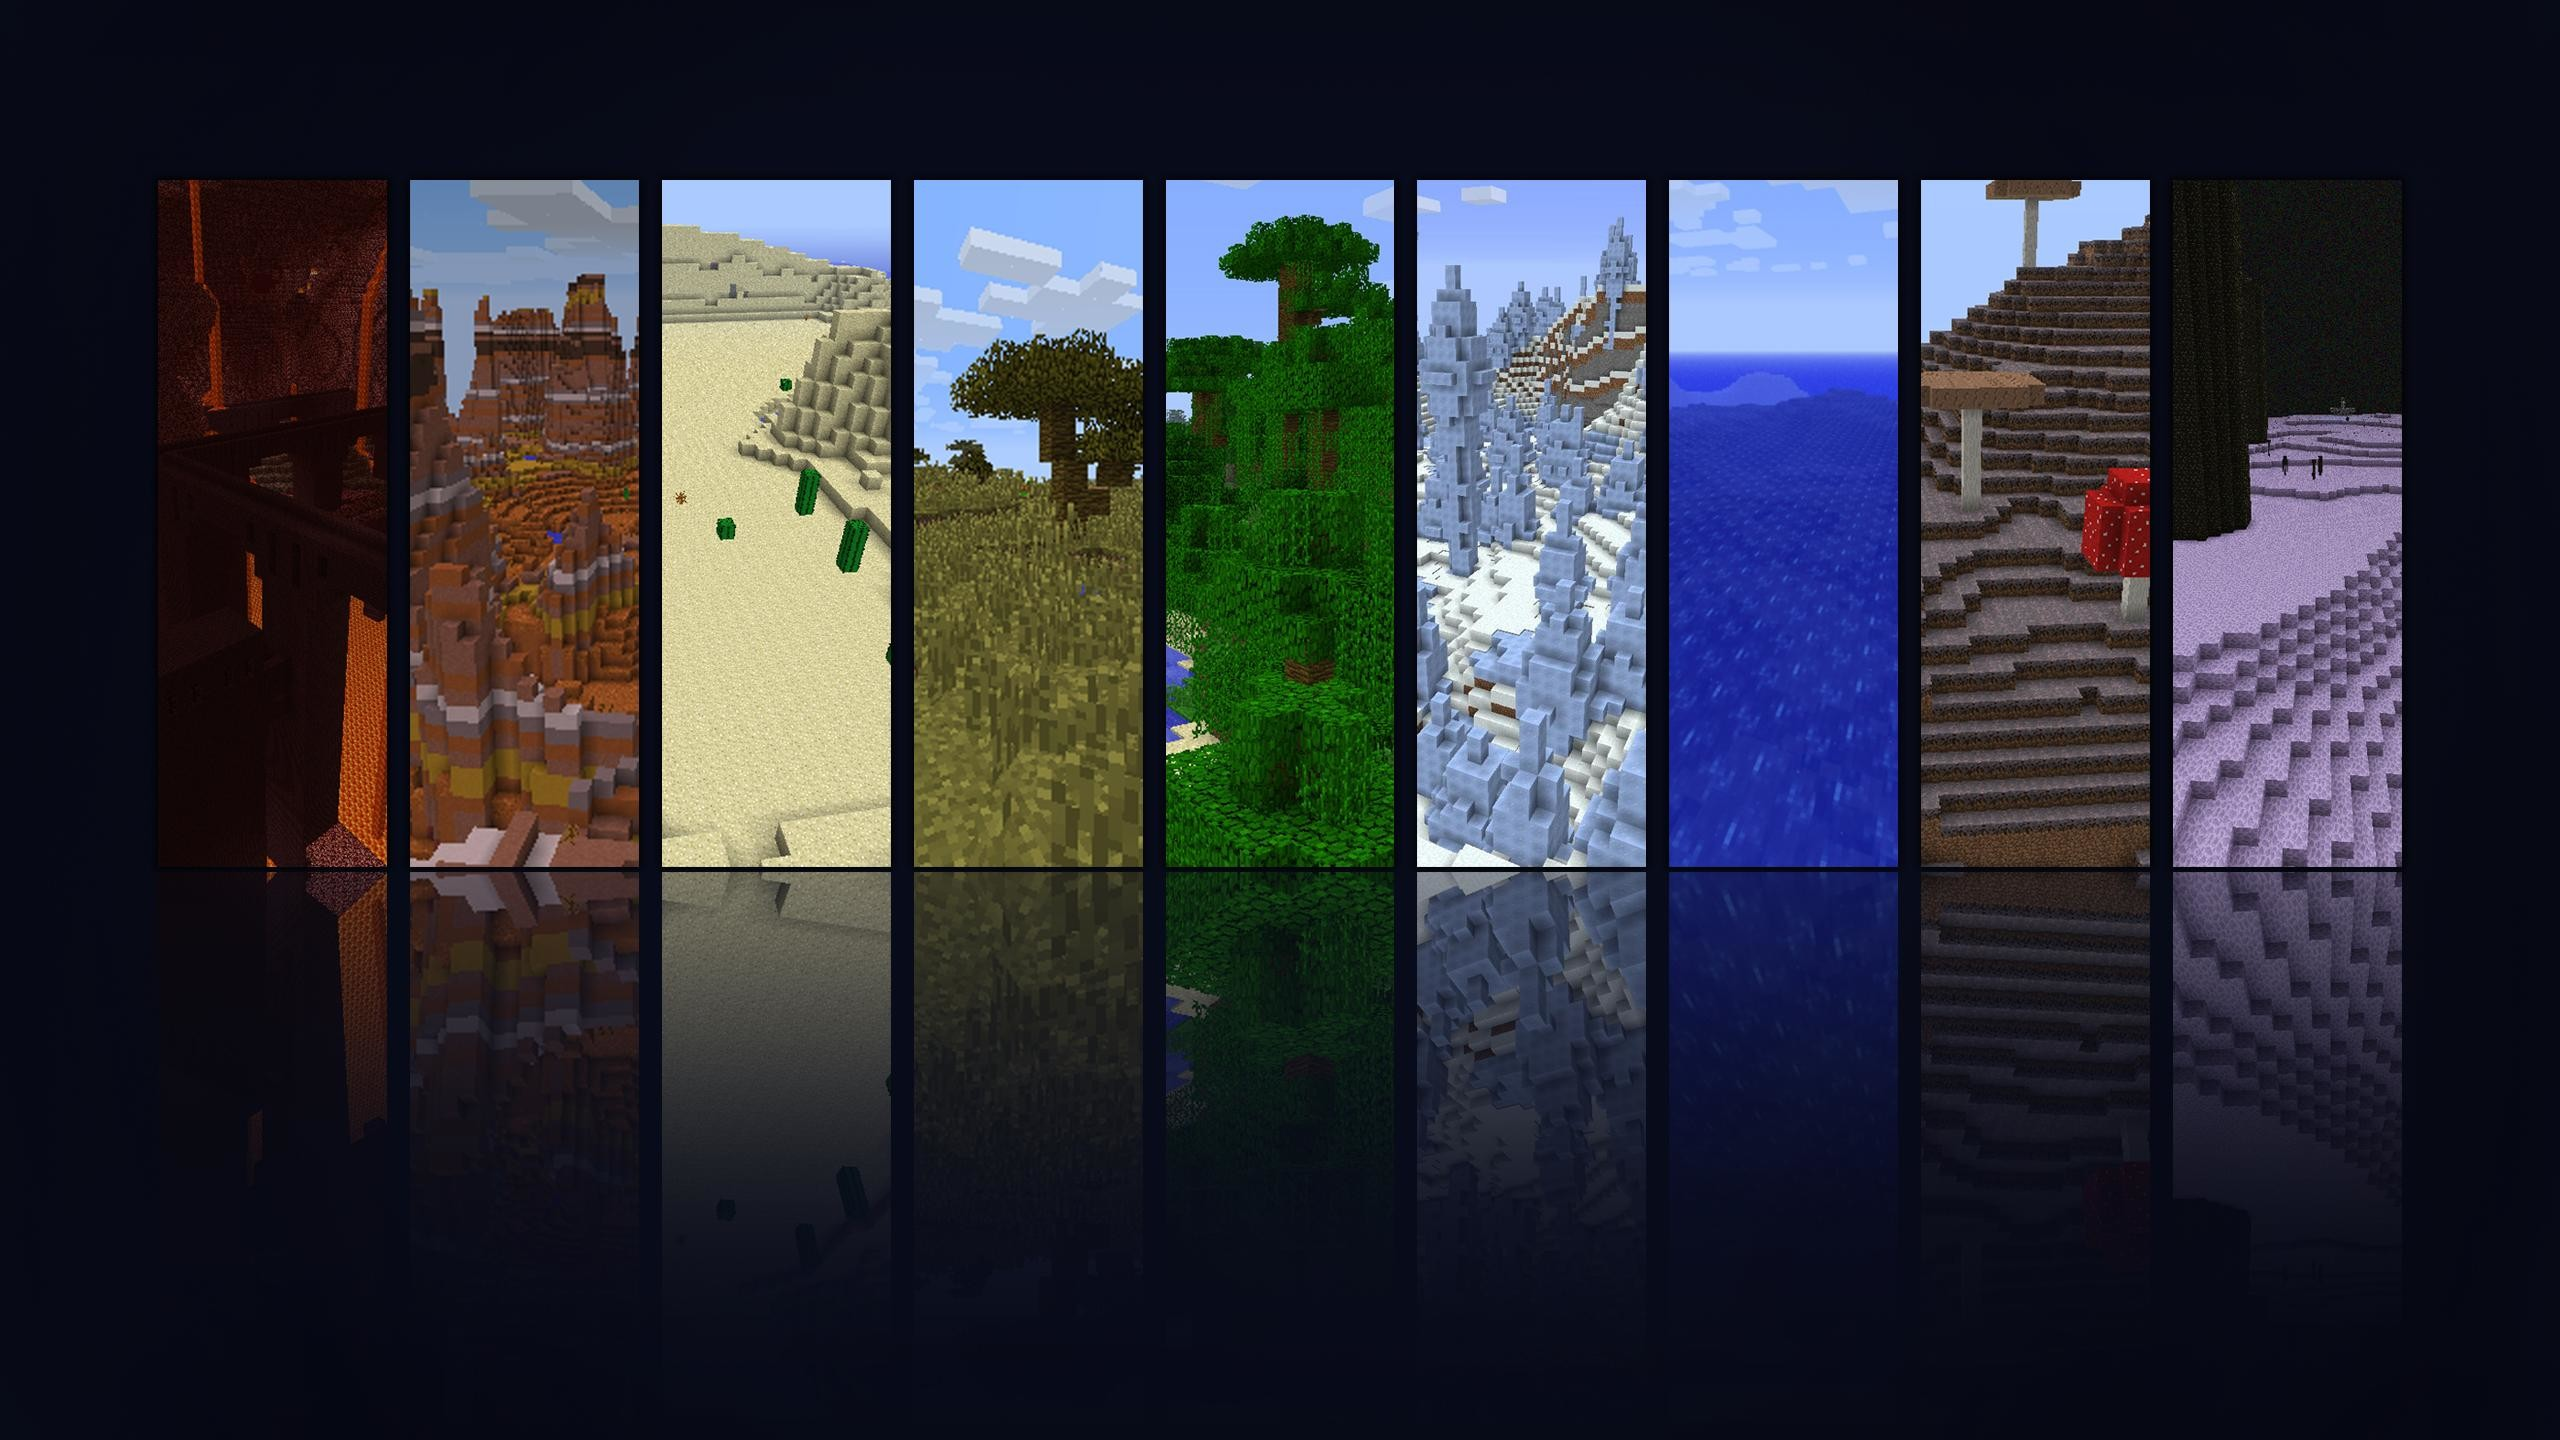 2560x1440 wallpaper.wiki-Minecraft-Wallpapers-for-Facebook-PIC-WPE008098